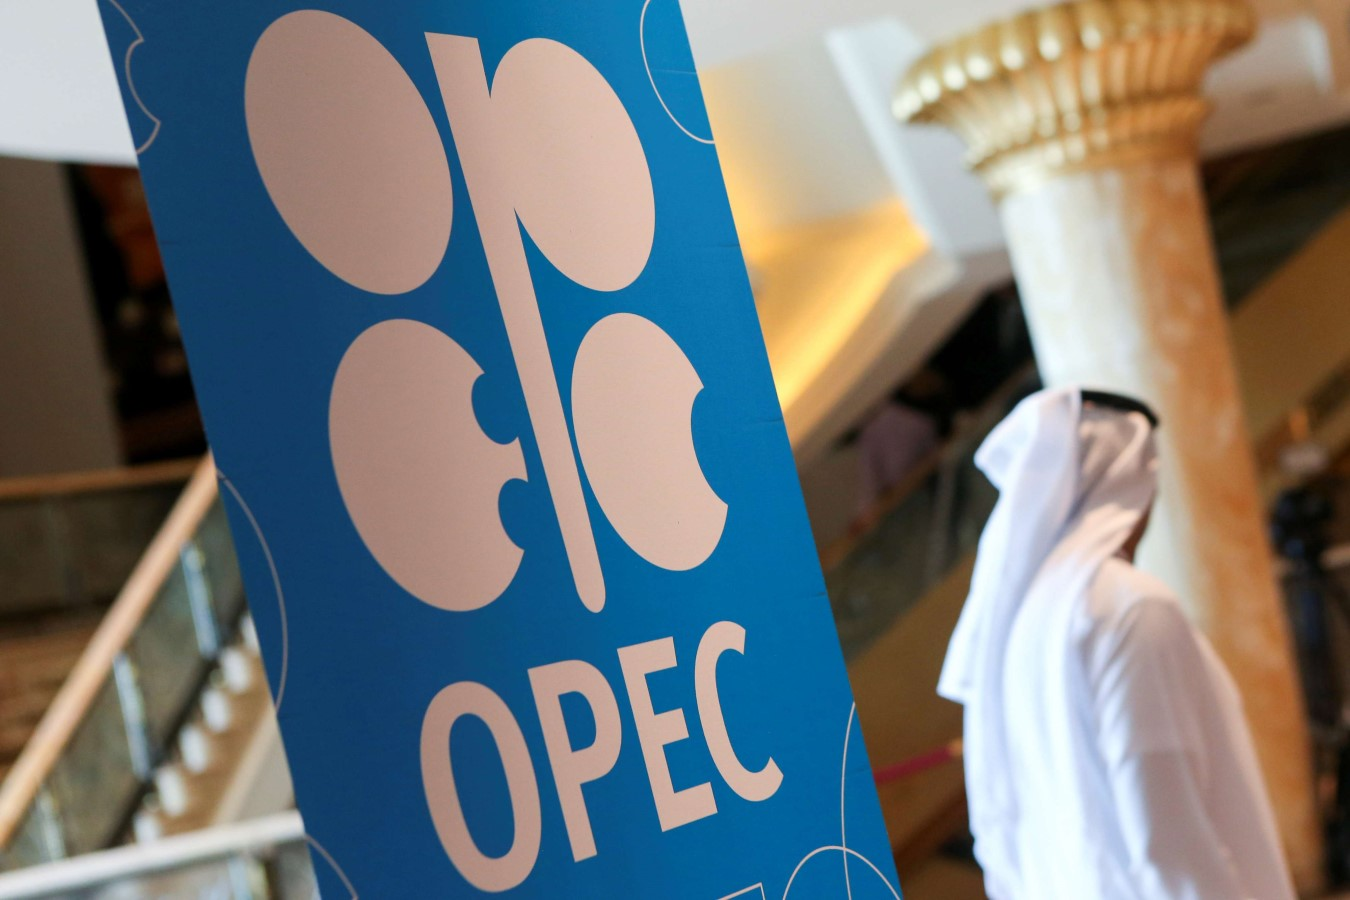 The logo of Opec is seen at the joint Ministerial Monitoring Committee in Abu Dhabi, United Arab Emirates September 12. (Reuters)